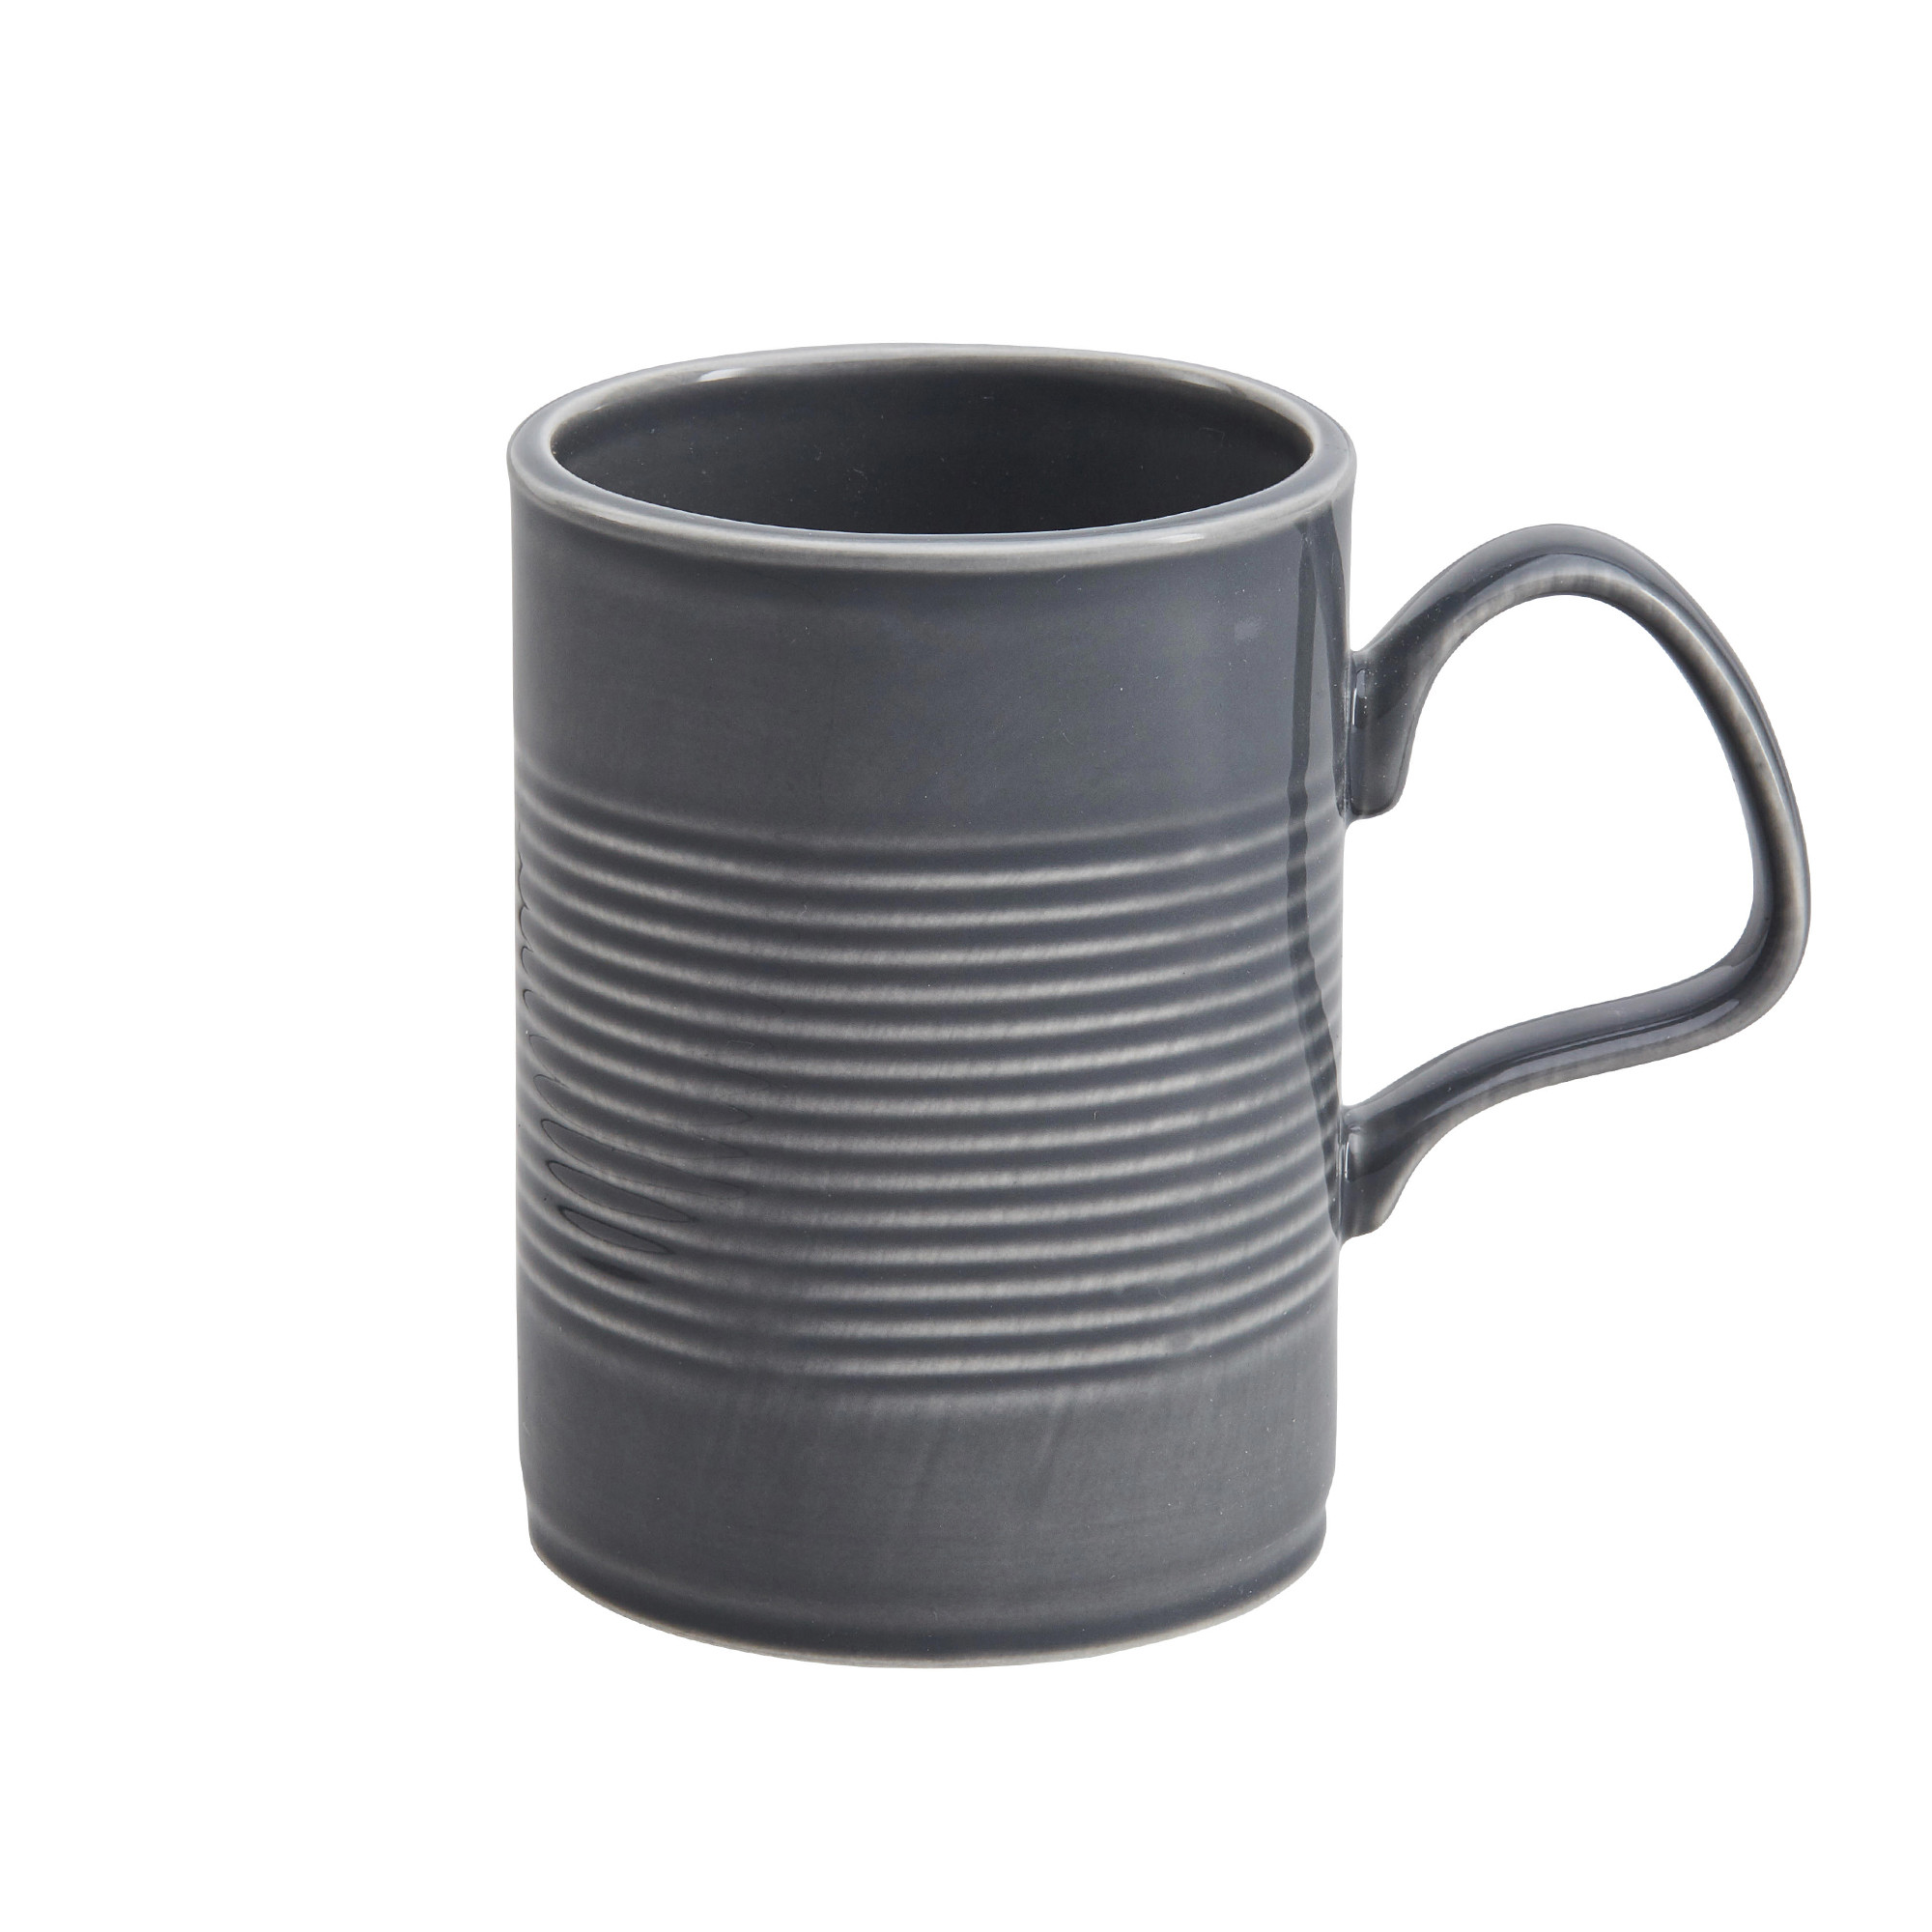 "<span class=""link fancybox-details-link""><a href=""/artists/37-stolen-form/works/1016-stolen-form-tin-can-mug-large-grey-2017/"">View Detail Page</a></span><div class=""artist""><strong>Stolen Form</strong></div> <div class=""title""><em>Tin Can Mug - Large - Grey</em>, 2017</div> <div class=""medium"">Ceramic</div> <div class=""dimensions"">10.5 x 7.5 x 12 cm</div> <div class=""edition_details""></div><div class=""price"">£12.00</div><div class=""copyright_line"">Copyright The Artist</div>"